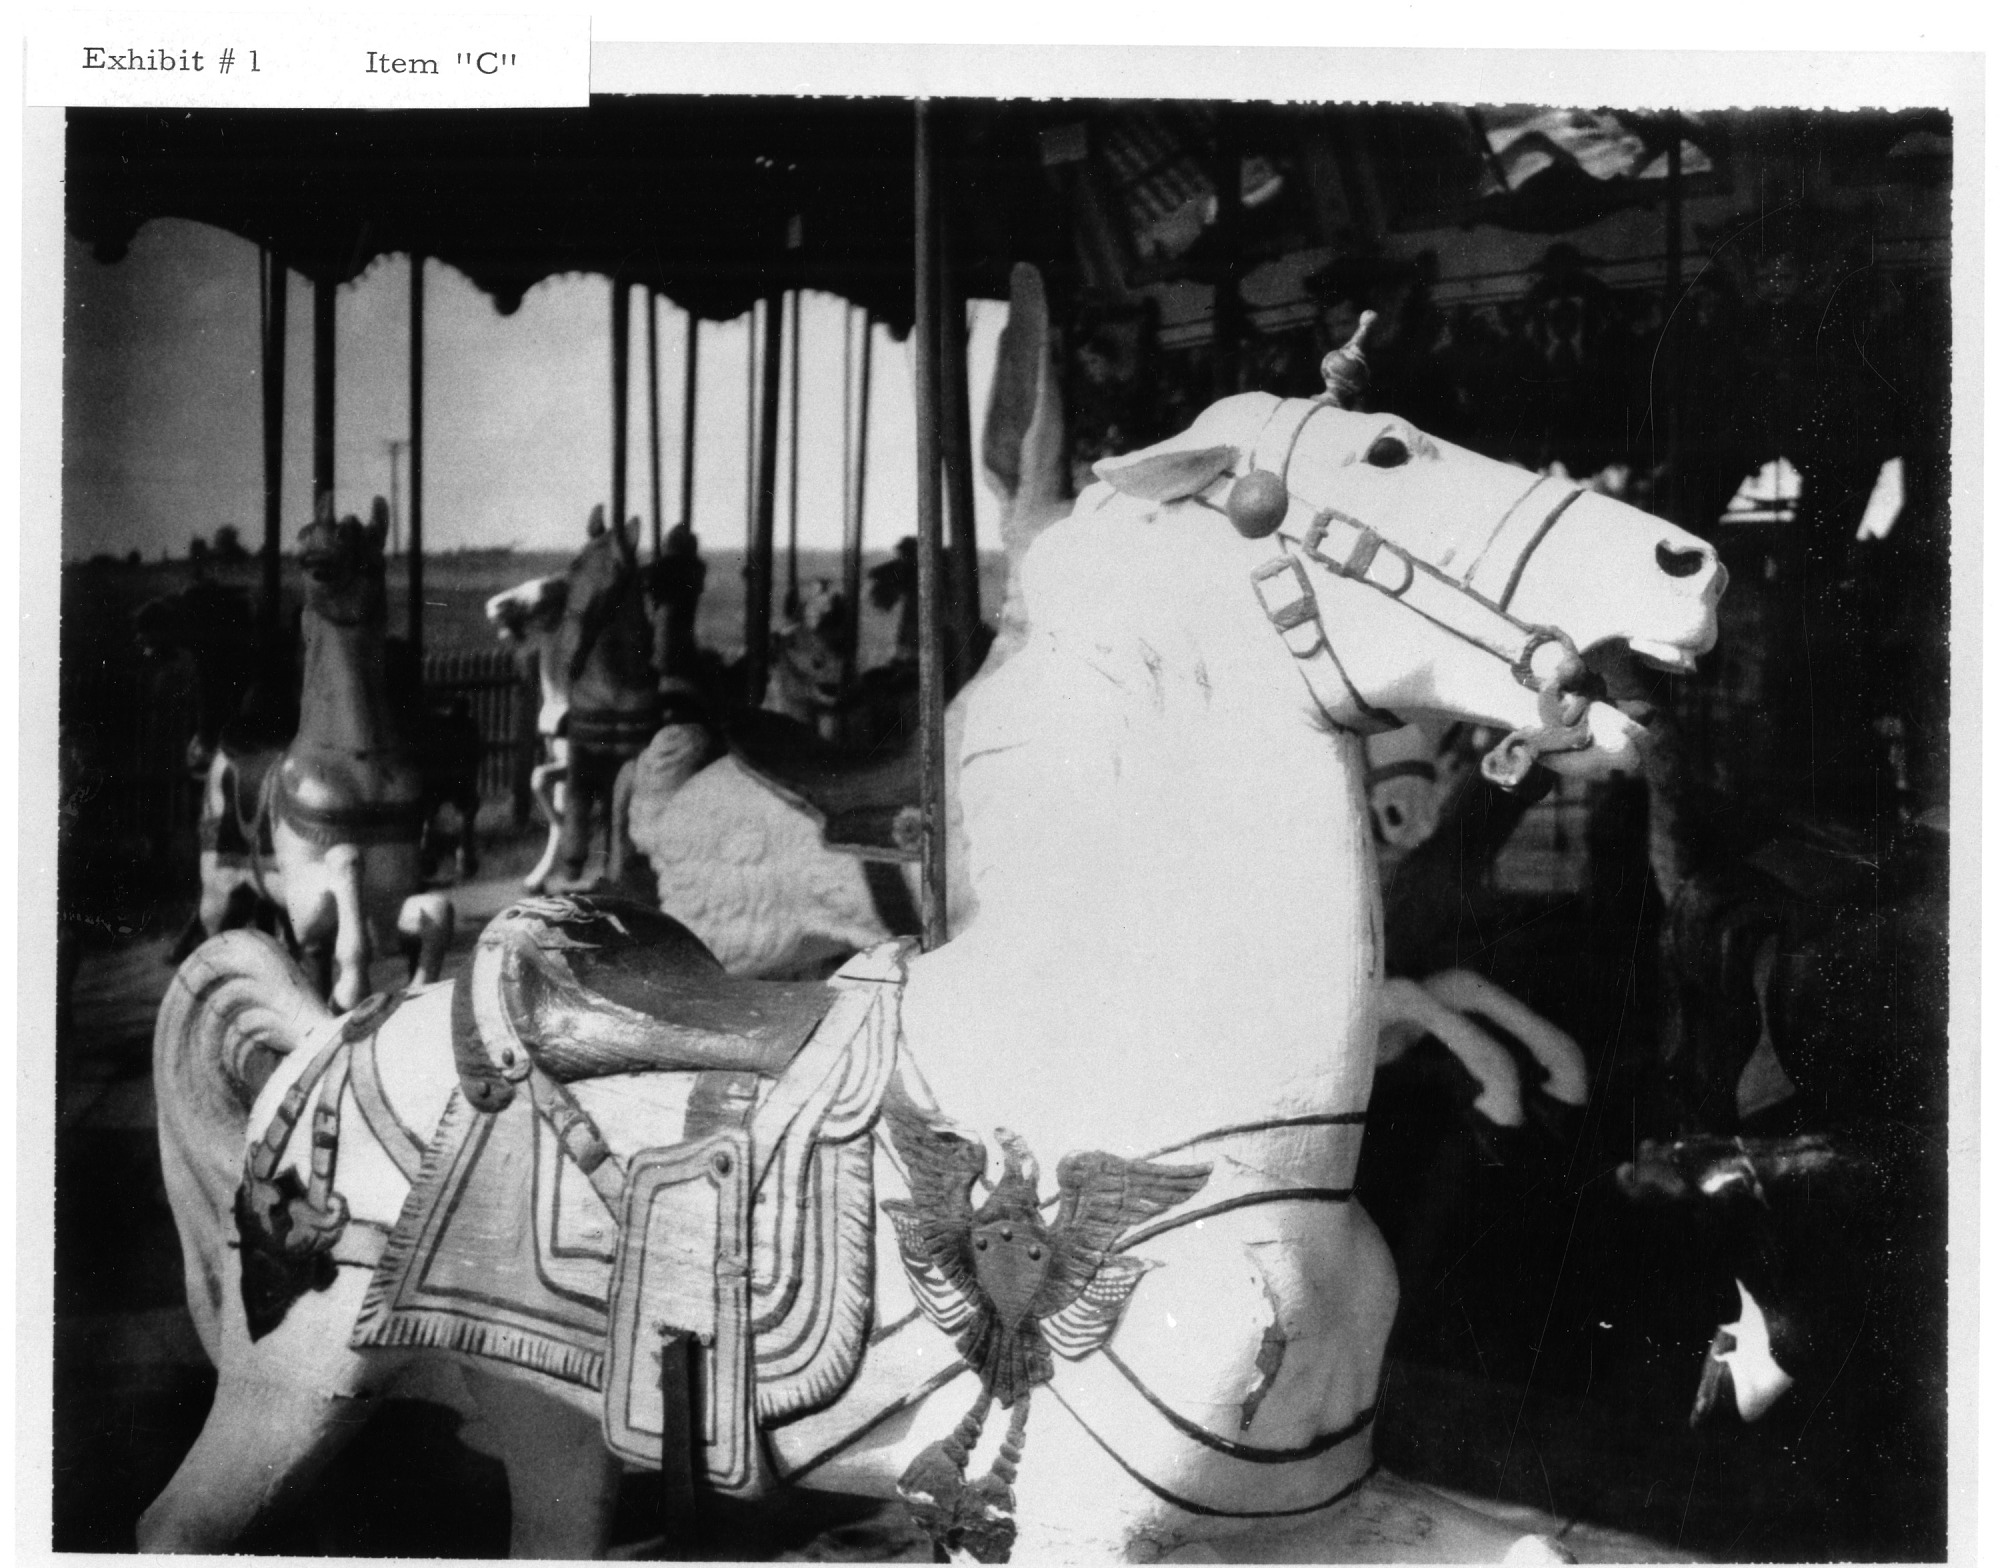 Dentzel Carousel in 1966, 1966, Smithsonian Institution Archives, SIA RU000285 [SIA2010-3447].